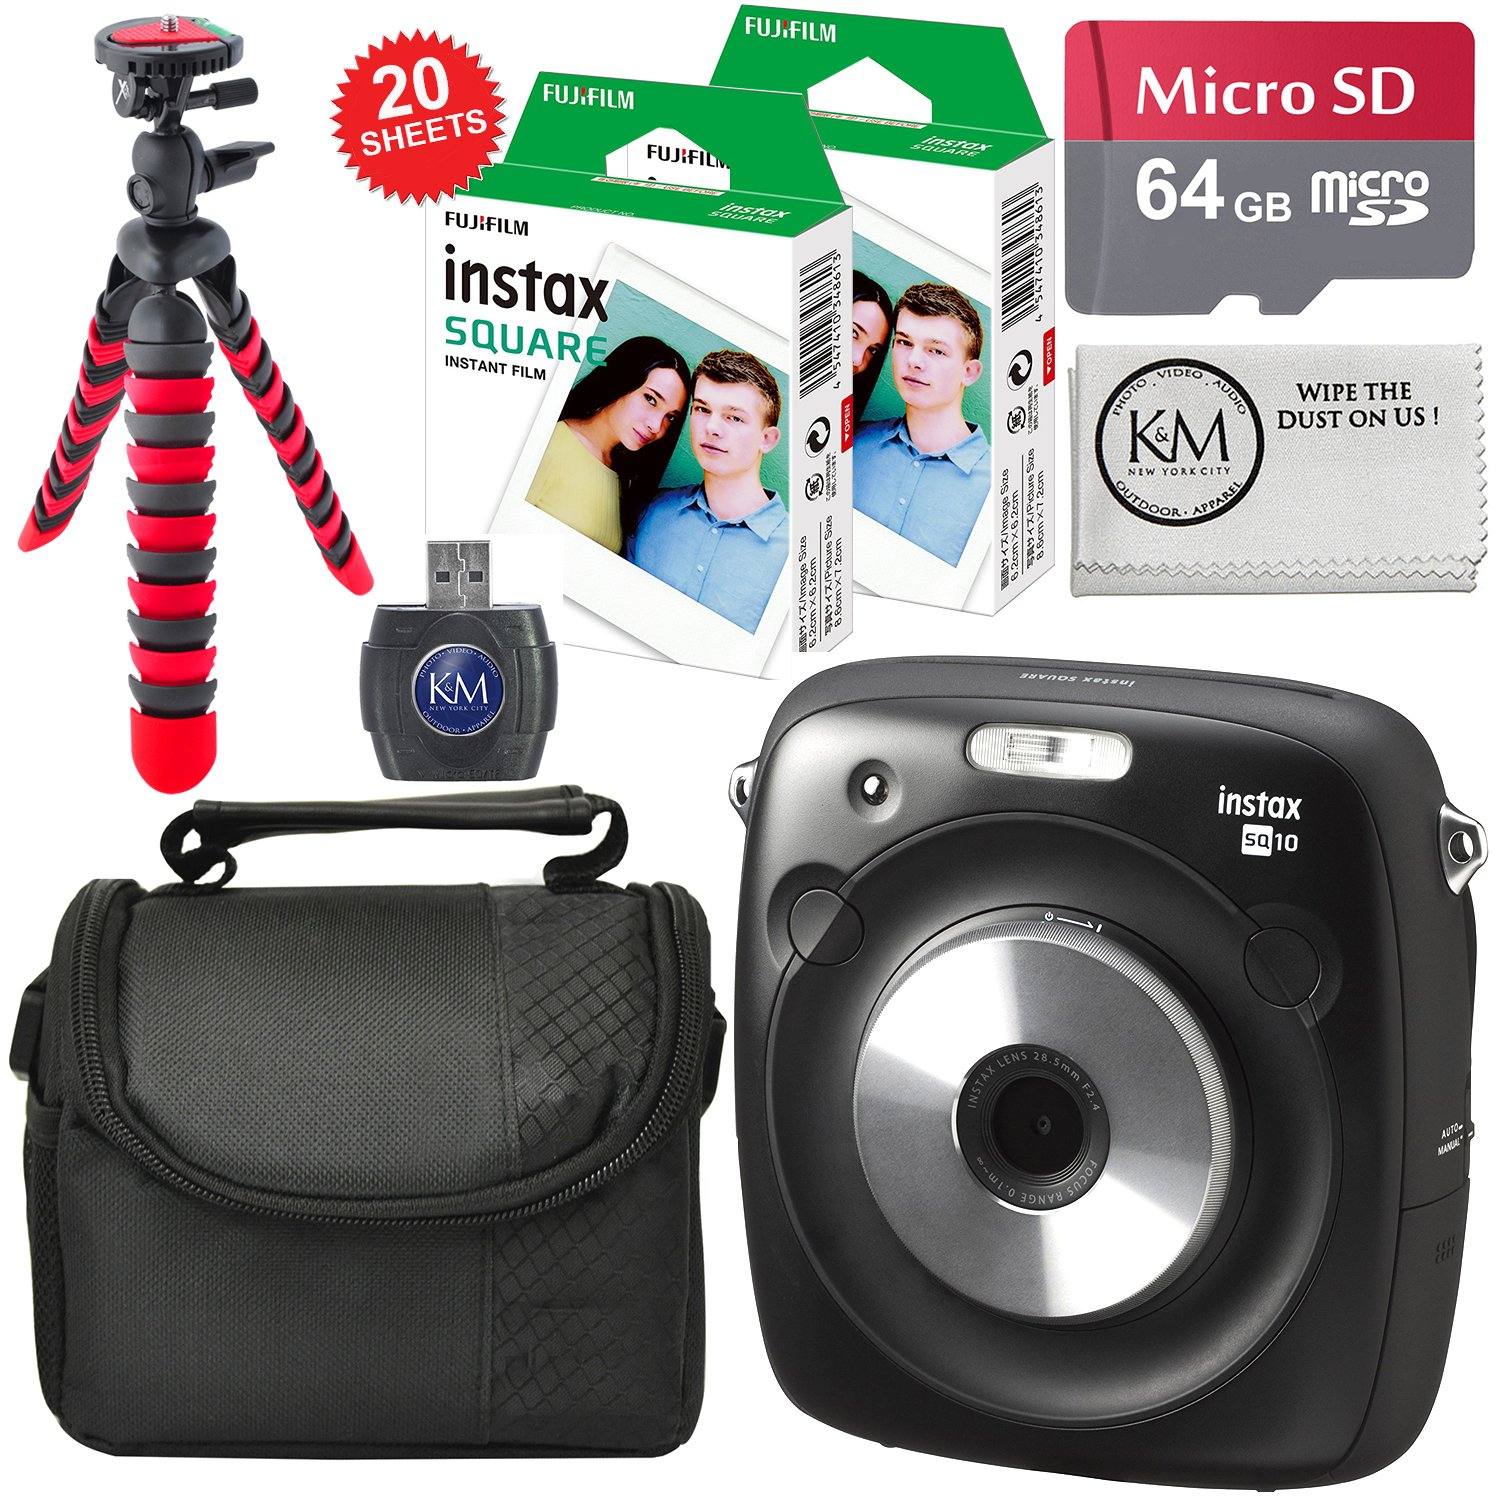 Fujifilm Instax SQUARE SQ10 Hybrid Instant Camera + 64GB Micro SD + Accessory Bundle + Instax Square Film (20 Sheets)